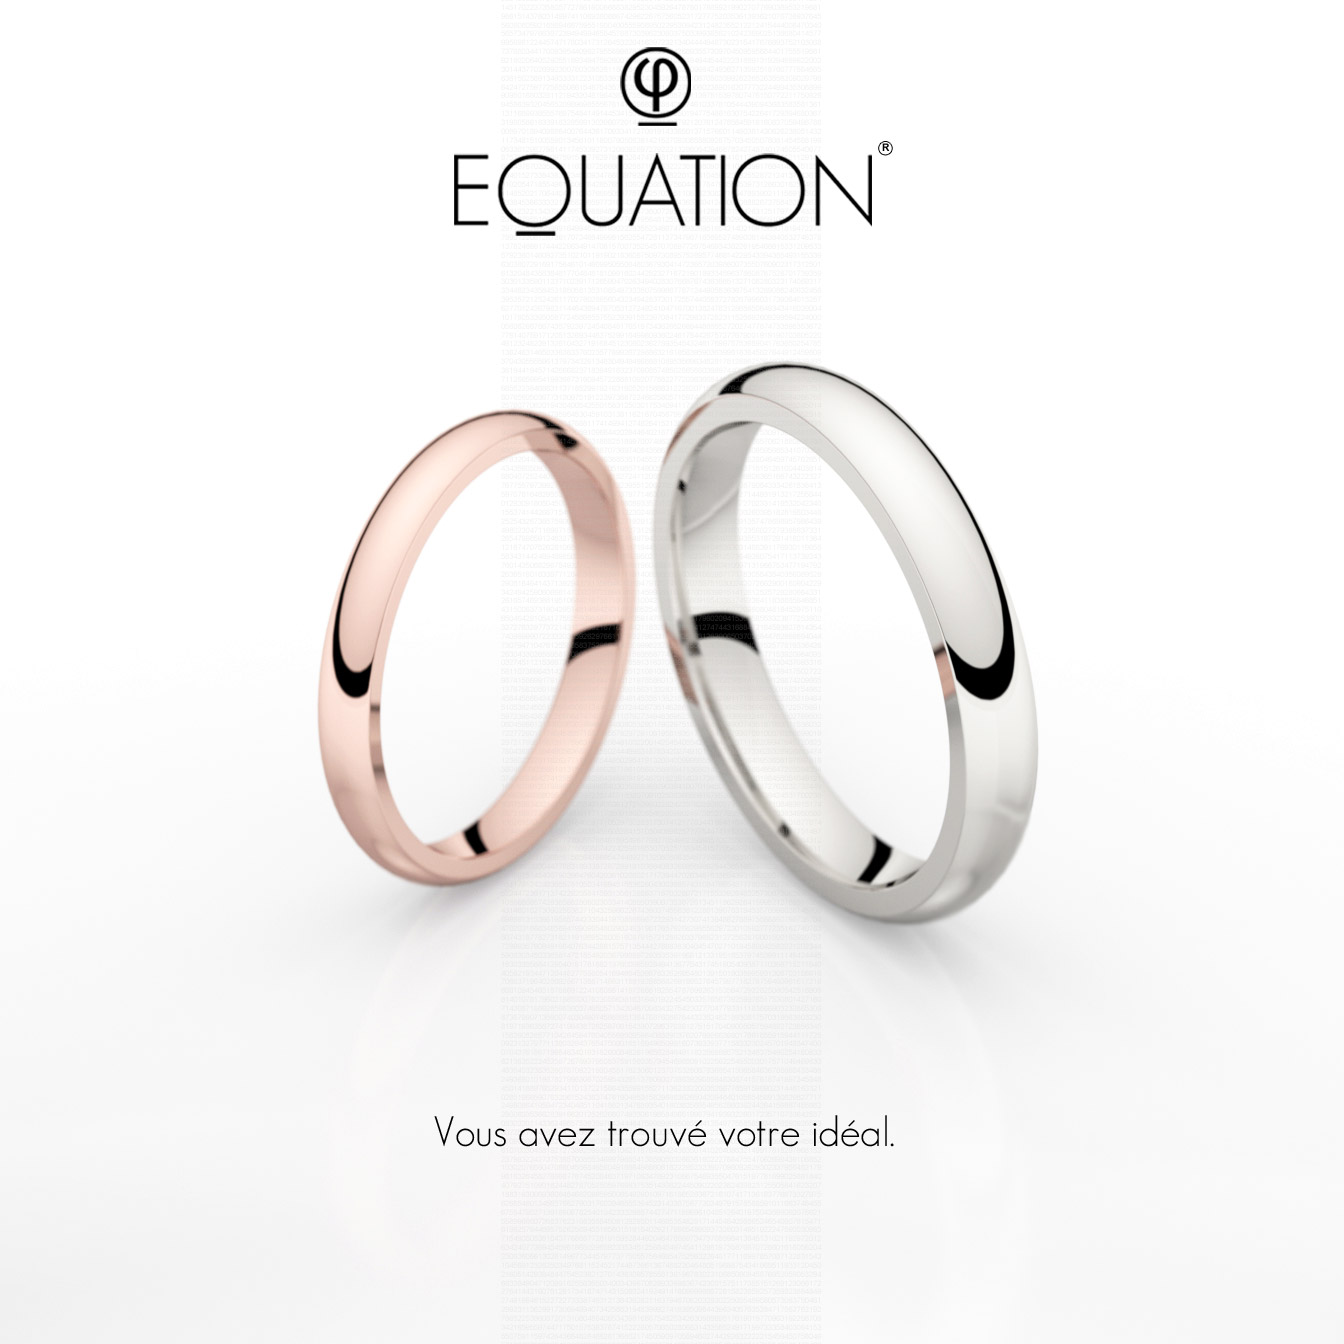 Alliance Equation en or rose et en or blanc